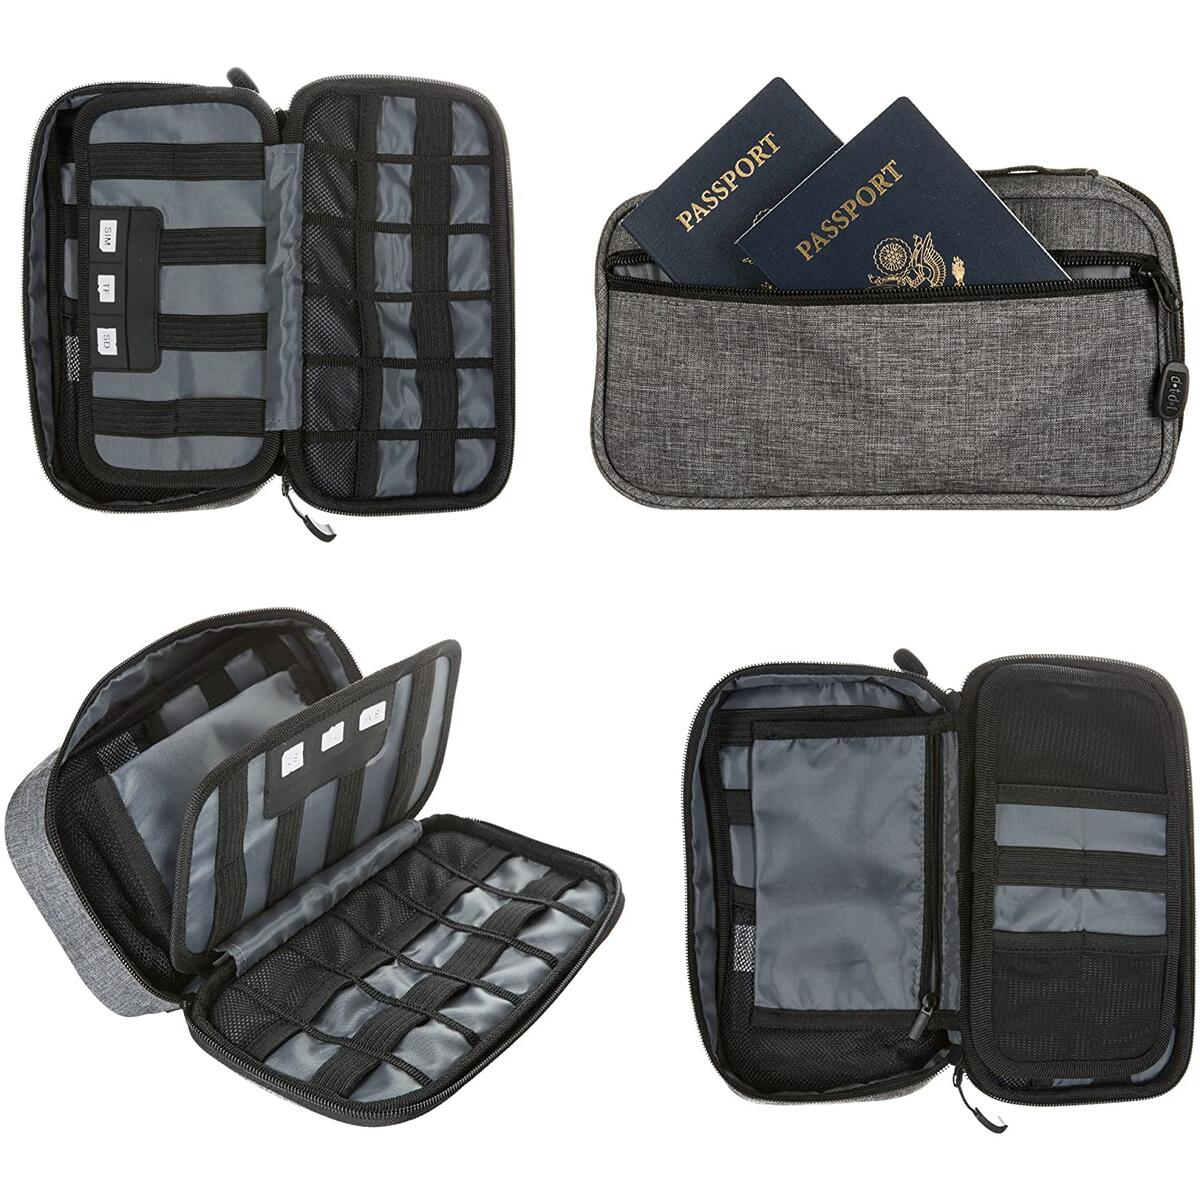 Slim Electronics Organizer Travel Tech Case